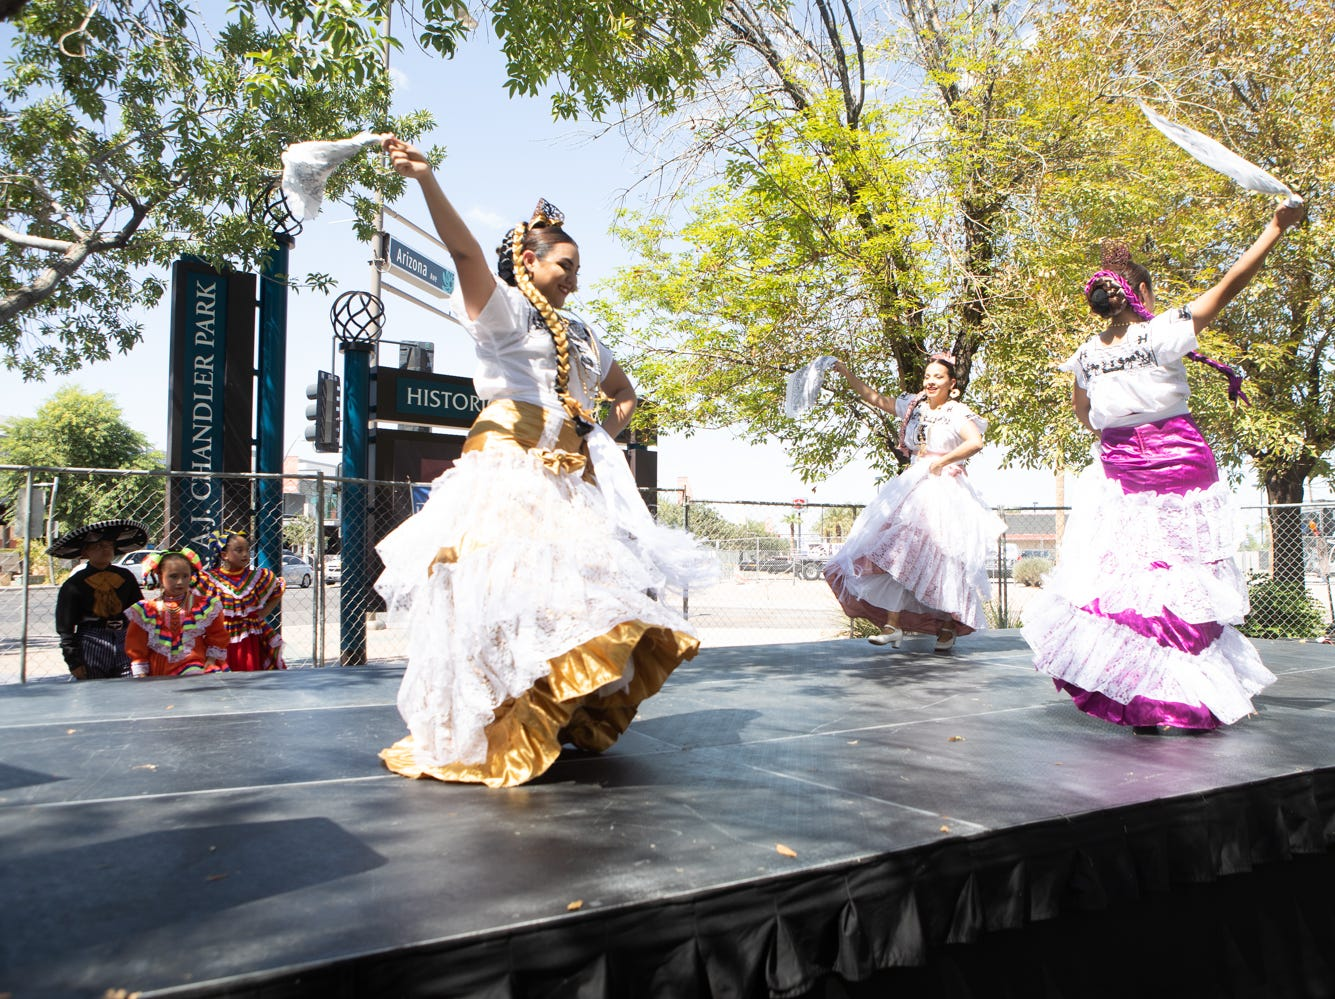 There was something for everyone at the 2018 Rockin' Taco Street Fest on Saturday, Sept. 15, 2018 in Chandler.